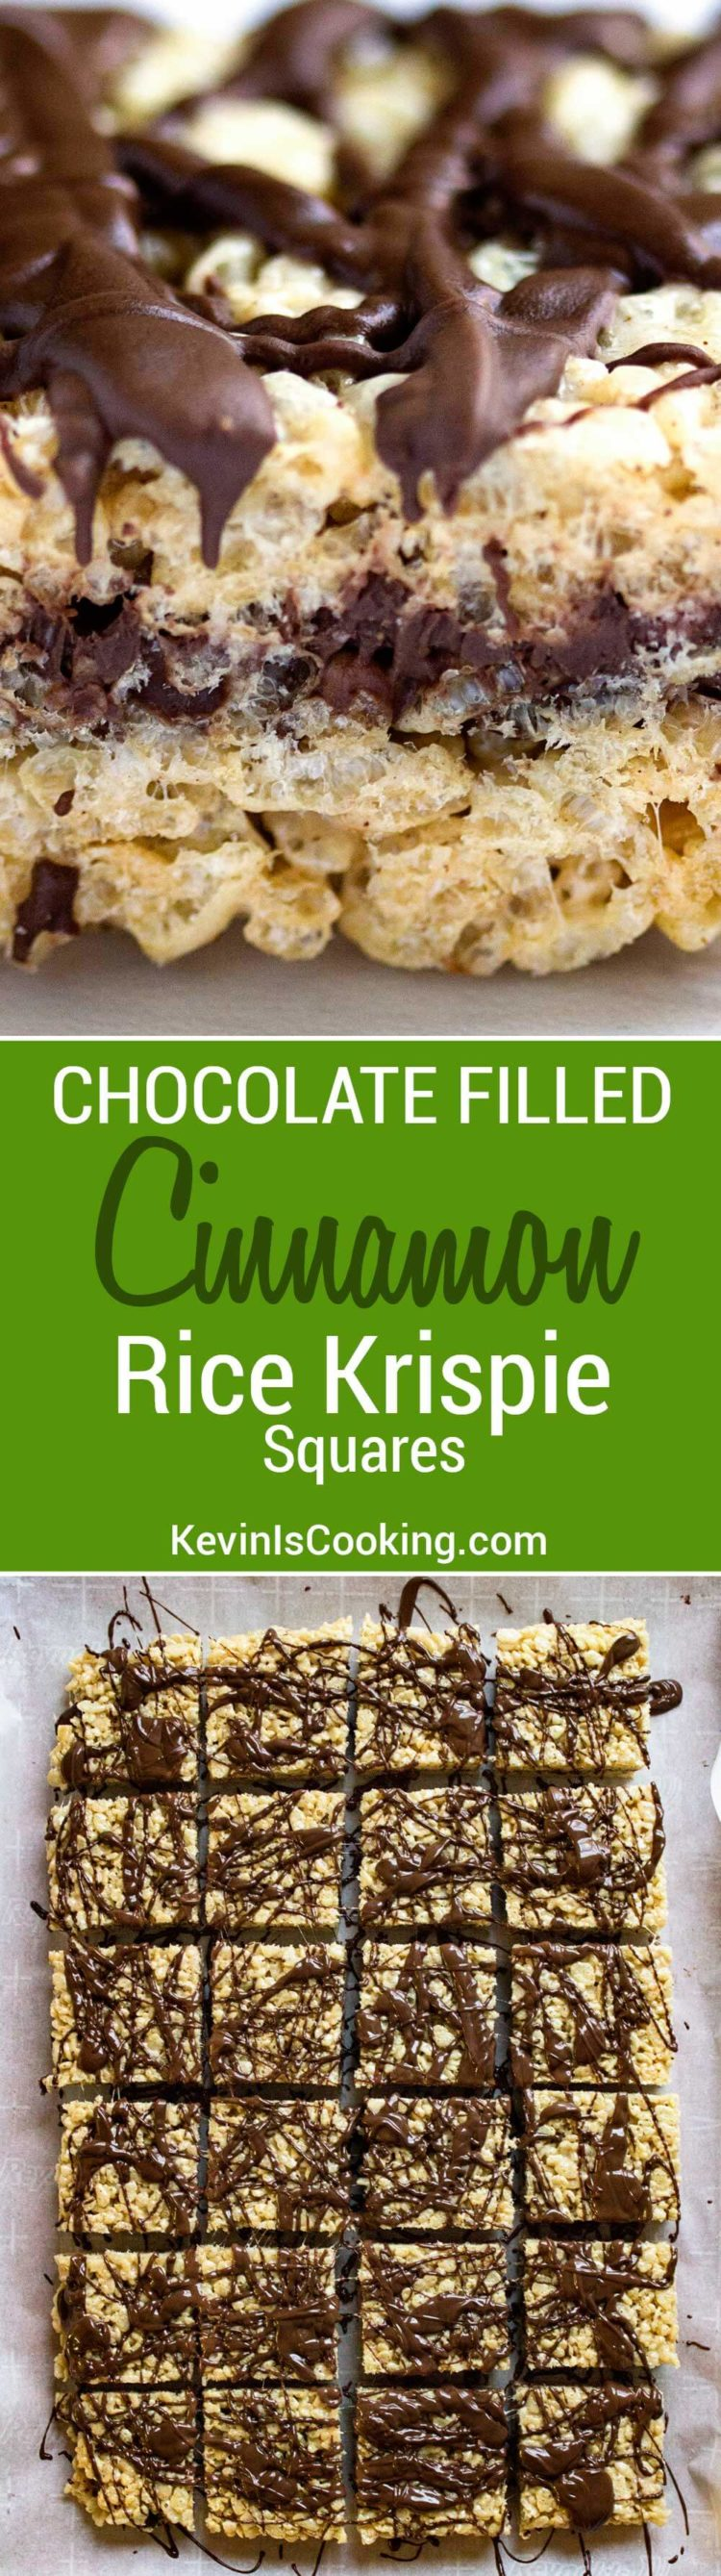 These Chocolate Rice Krispie Squares are ridiculously delicious and addictive. 2 layers of Rice Krispie treats with melted chocolate inside and on top!